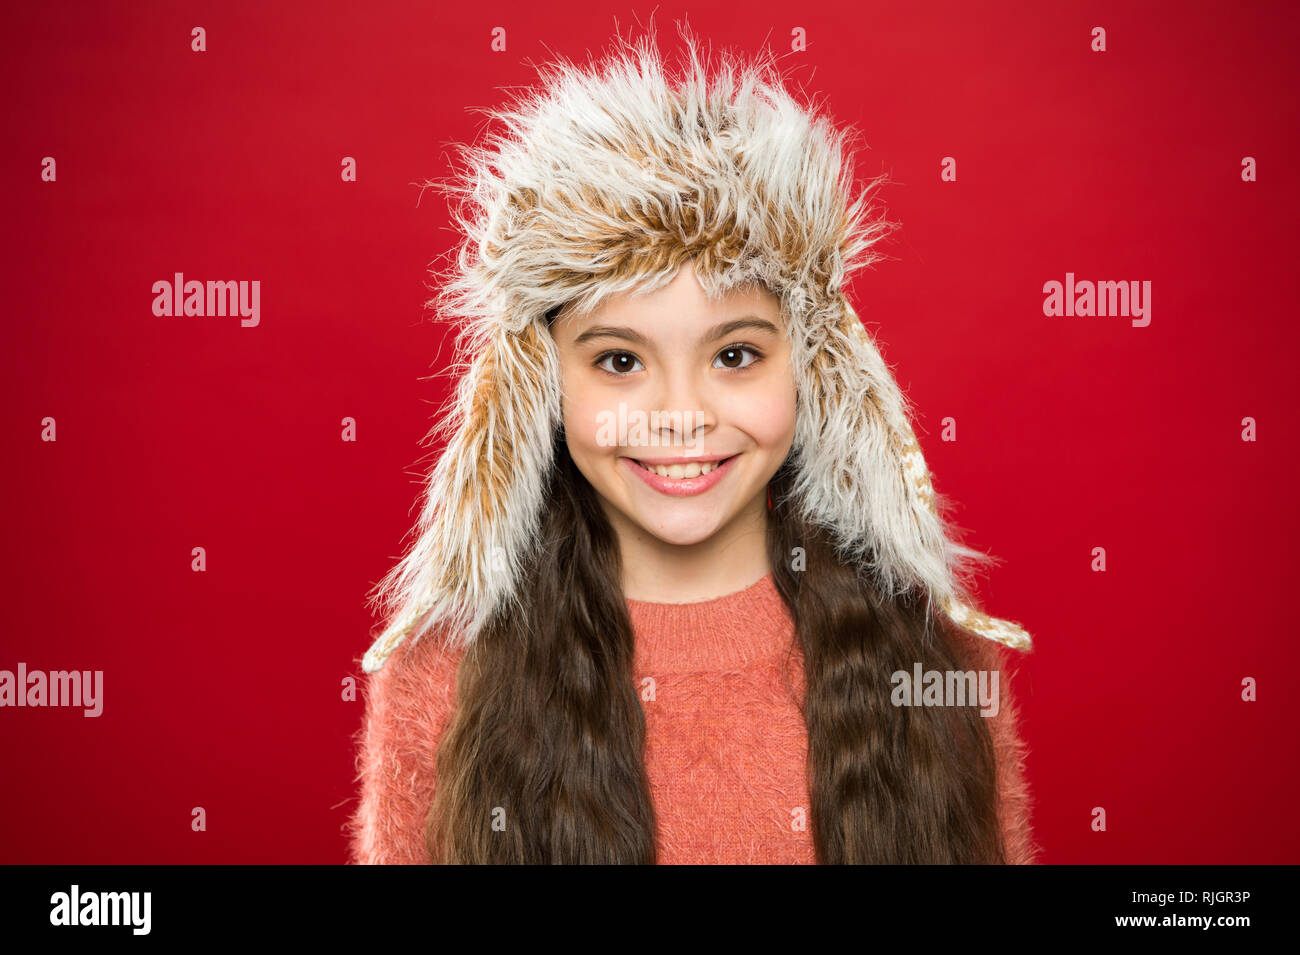 Soft furry accessory. Tips for caring for fur garments. Child long hair soft hat enjoy softness. Winter fashion concept. Warm hat for cold weather. Kid girl wear hat with ear flaps red background. - Stock Image